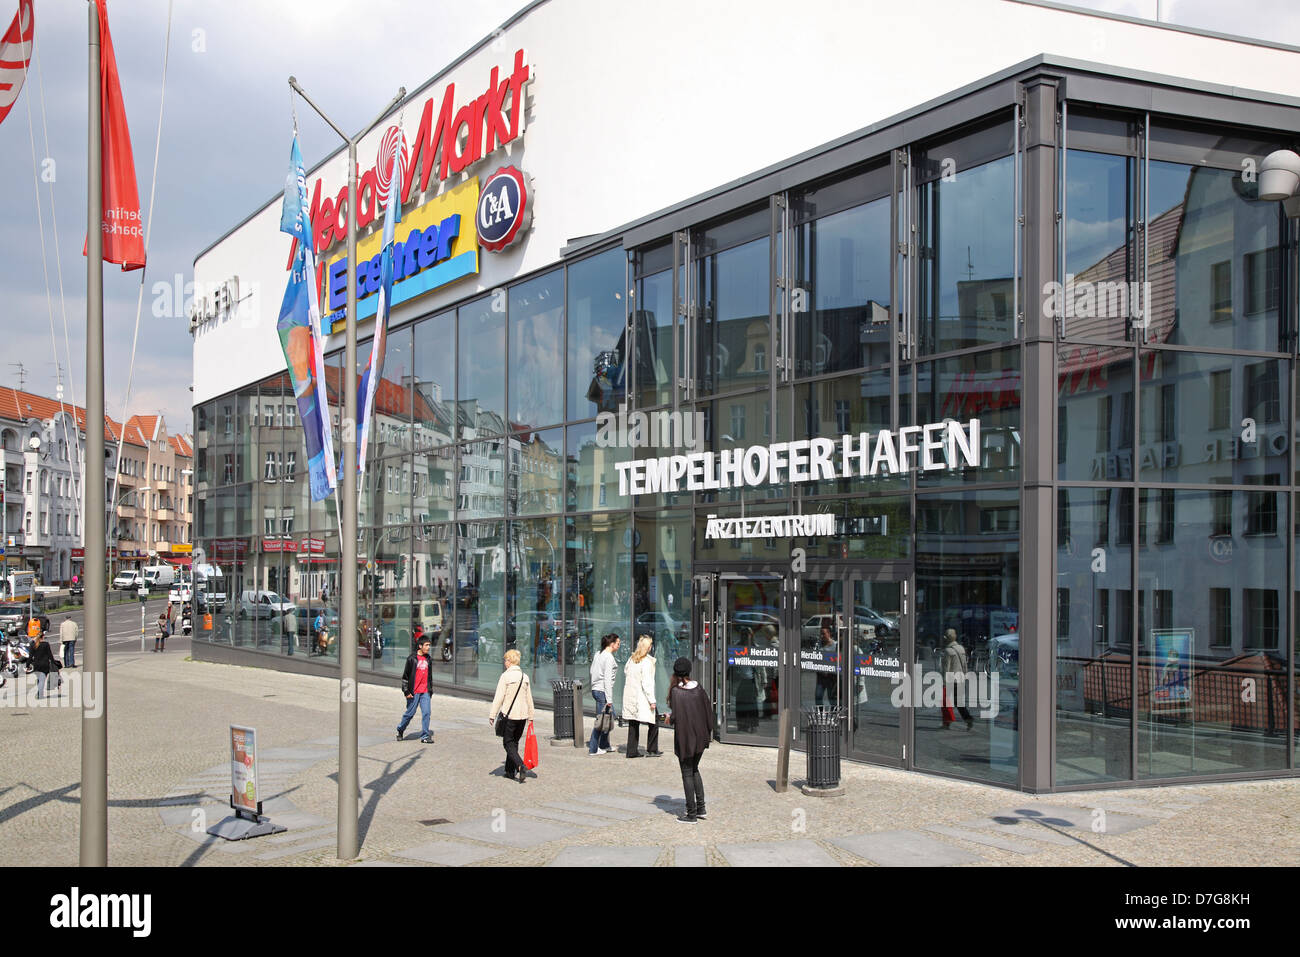 Berlin Tempelhofer Hafen Shopping Center - Stock Image